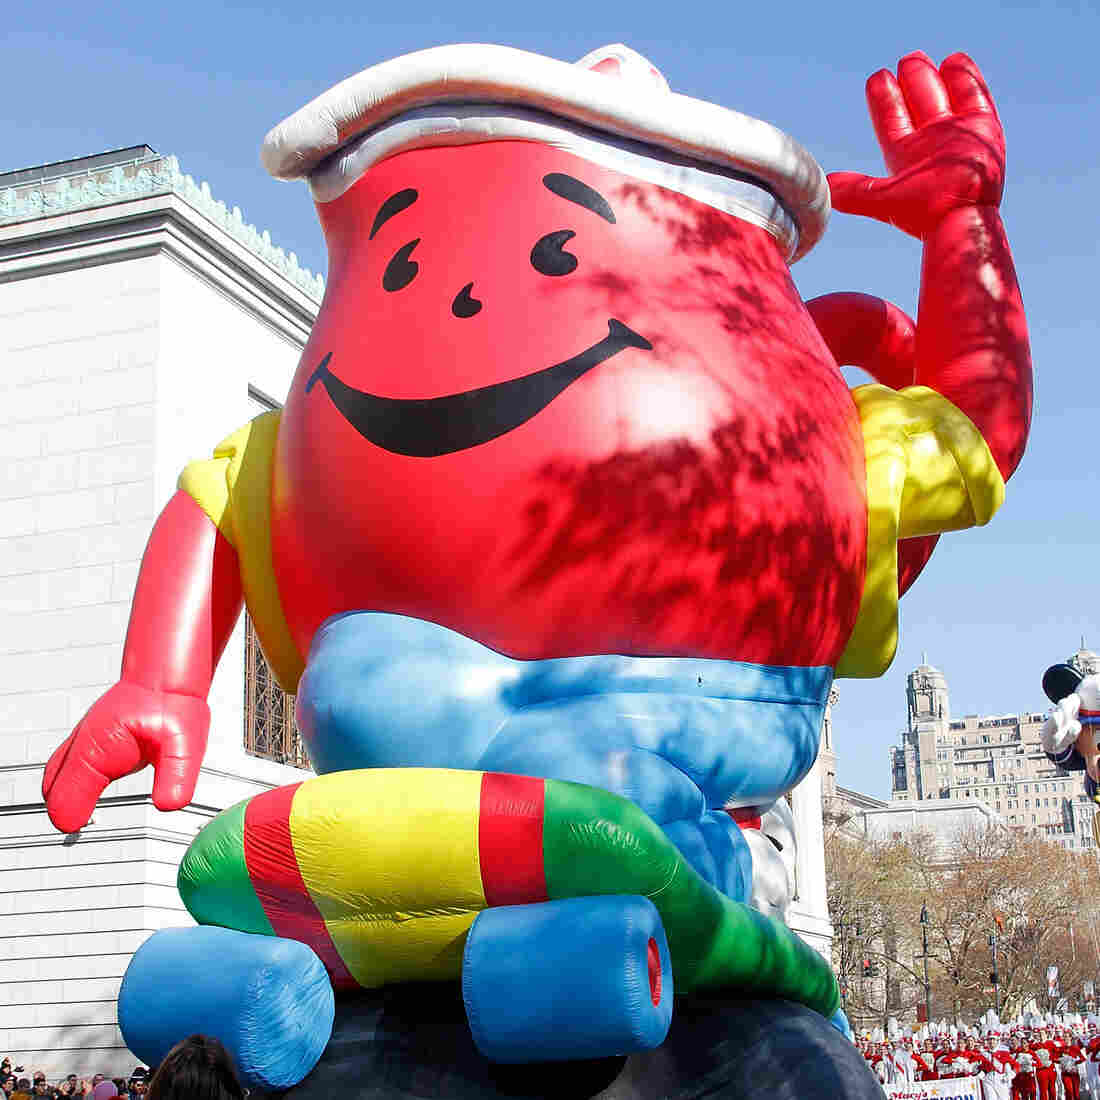 The Kool Aid falloon at the 86th Annual Macy's Thanksgiving Day Parade on Nov. 22, 2012, in New York City.